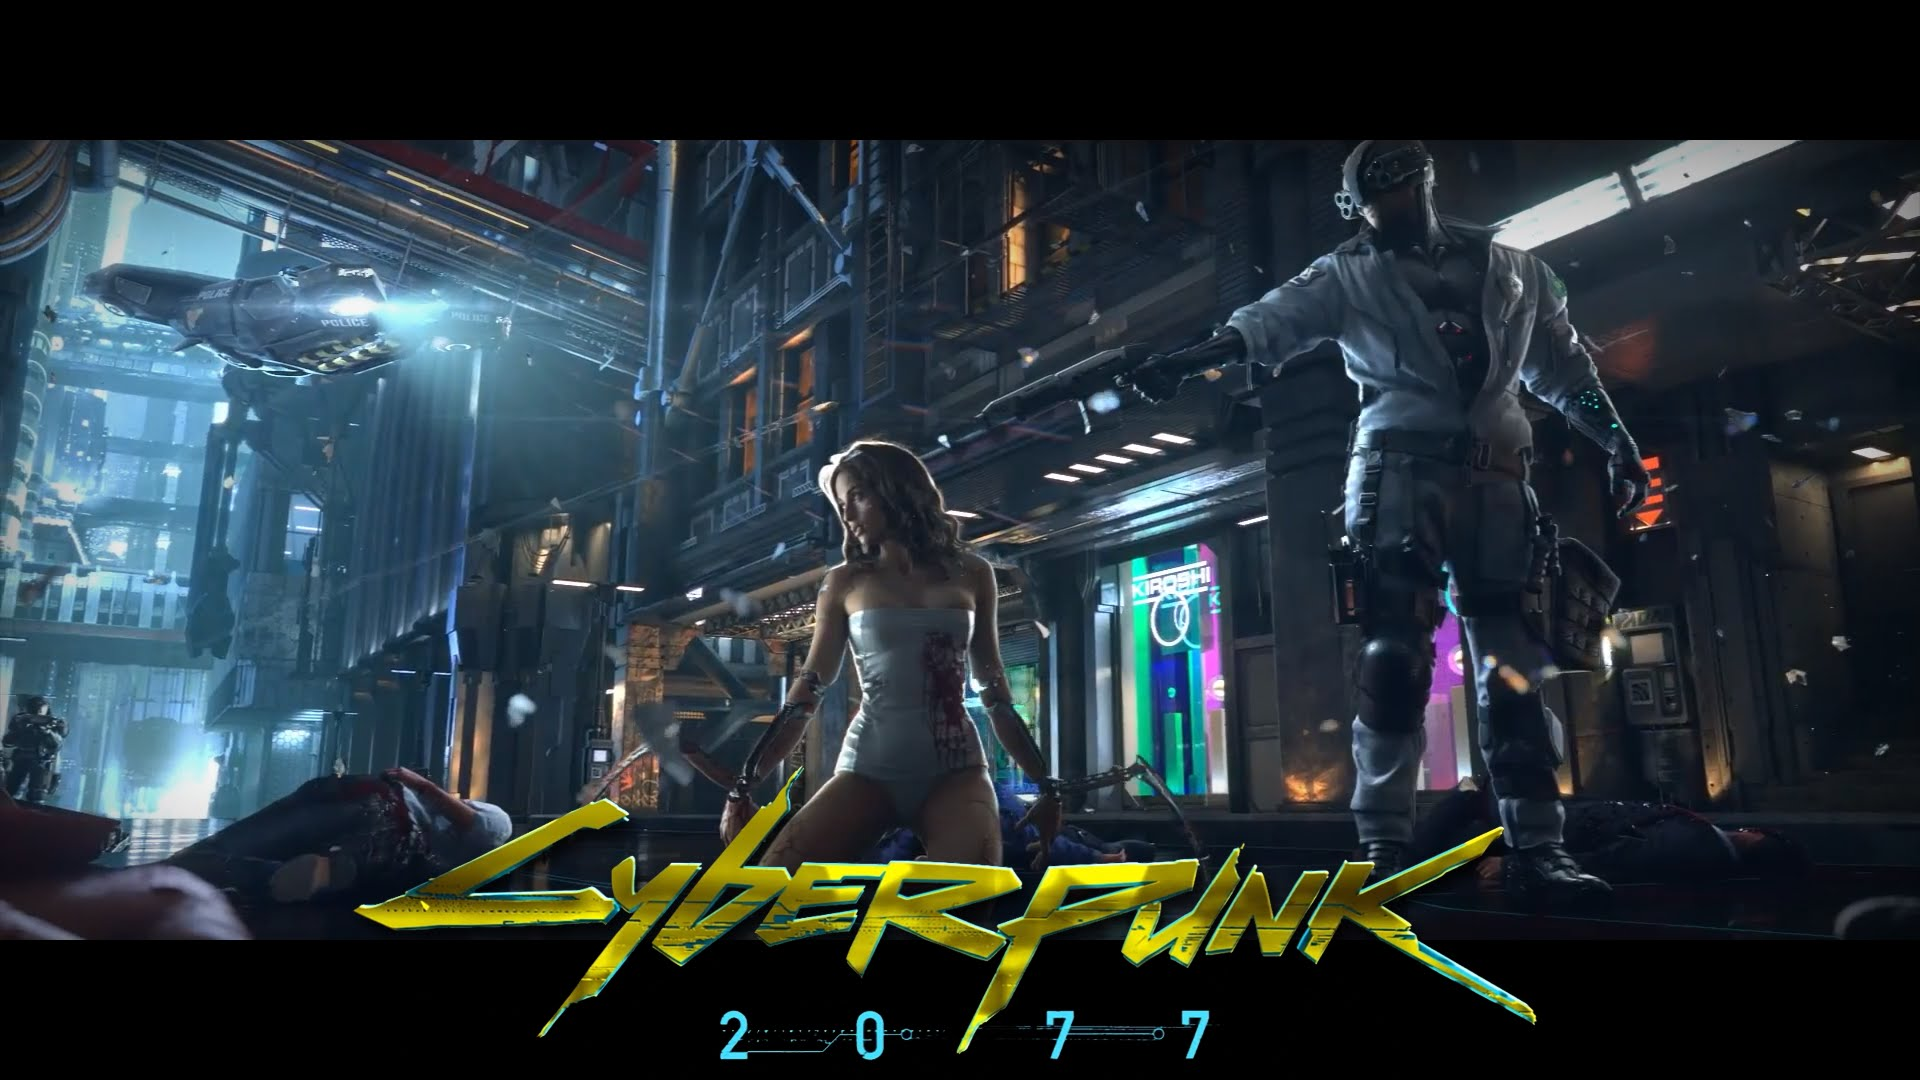 Cyberpunk 2077 promotional art